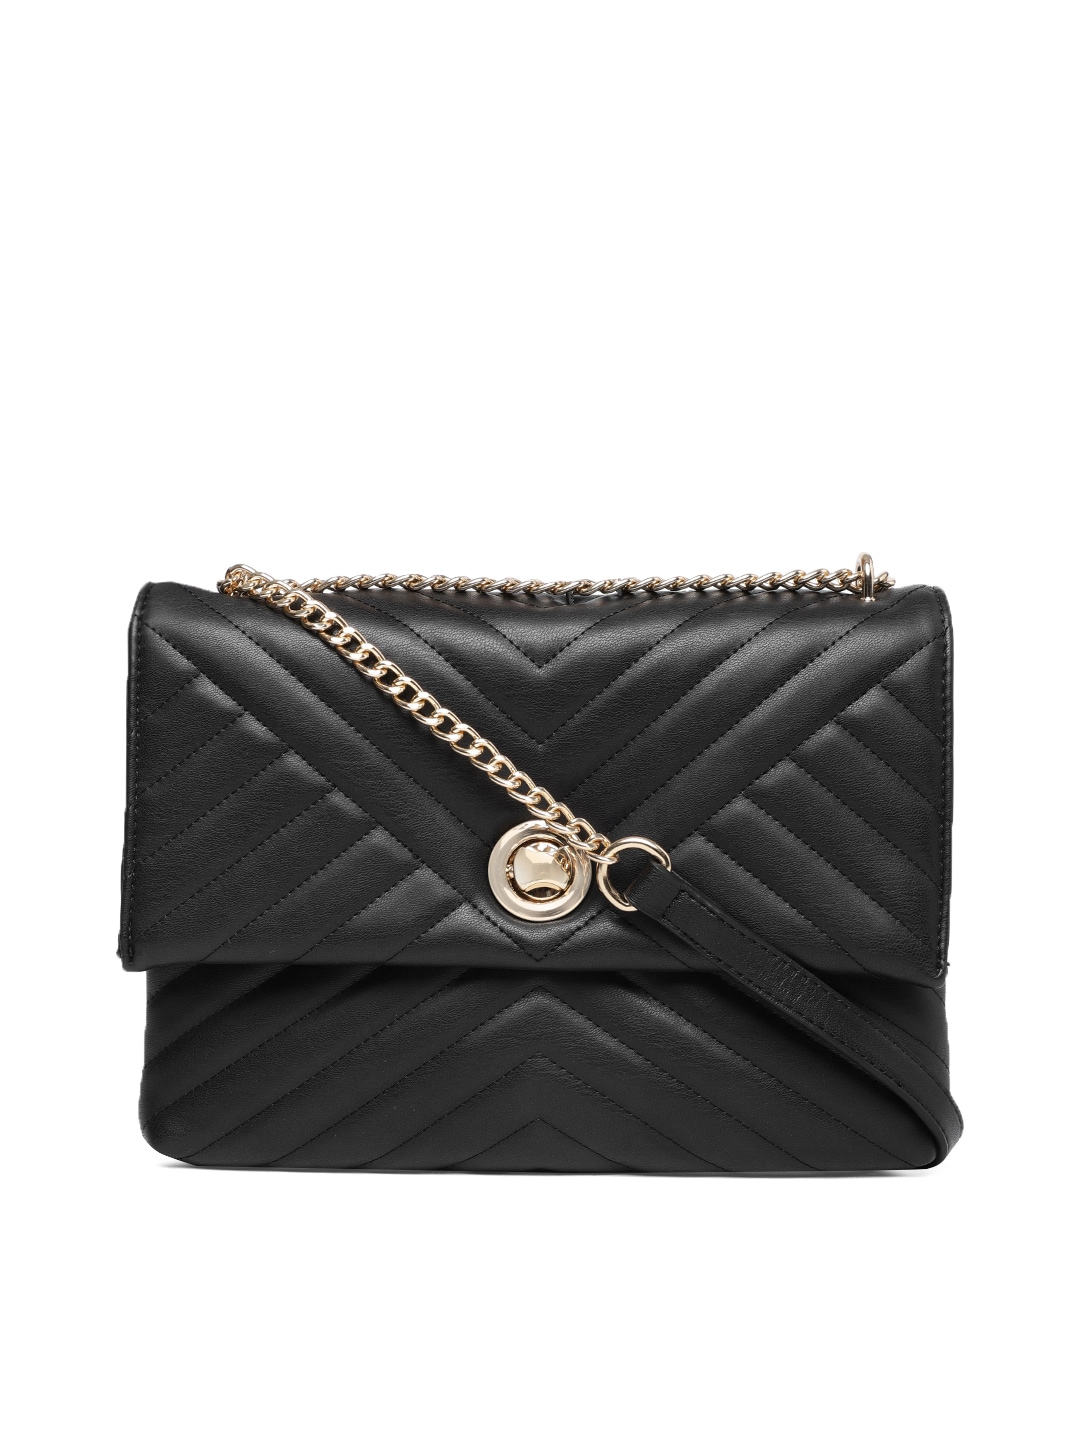 387f04966afa Forever 21 Bags - Buy Forever 21 Bags online in India